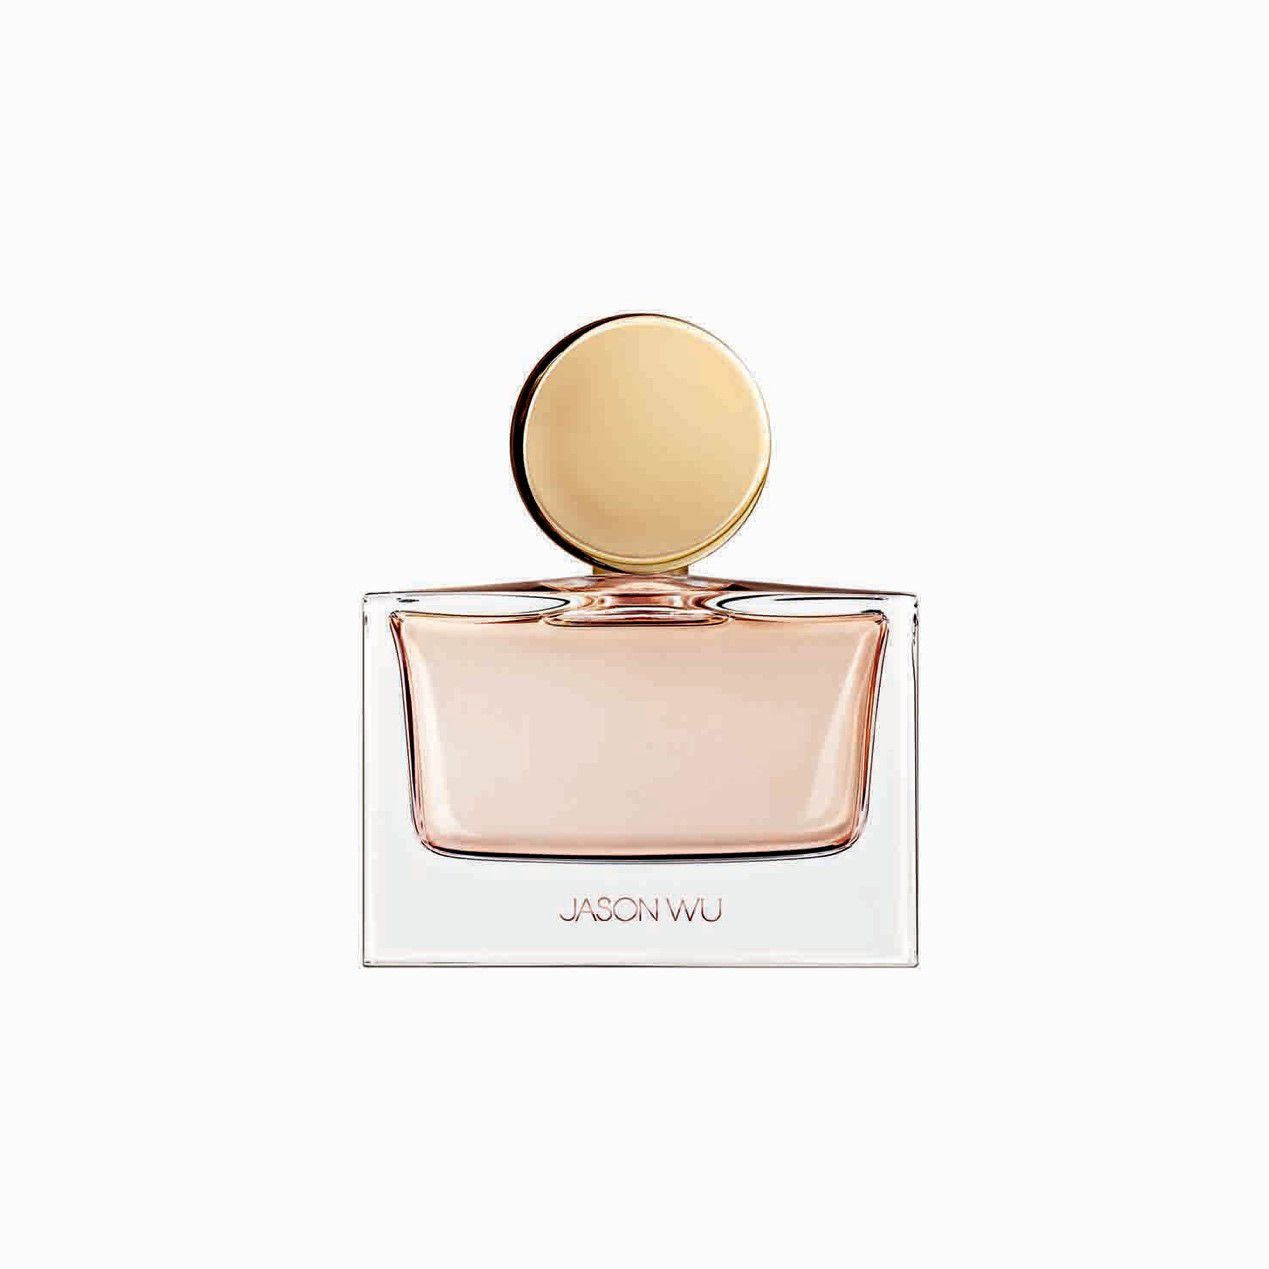 <strong>Jason Wu</strong><strong>吳季剛女性淡香精 香水系列</strong> Jason Wu吳季剛女性淡香精30ml,NT2,200, 90ml,NT4,500